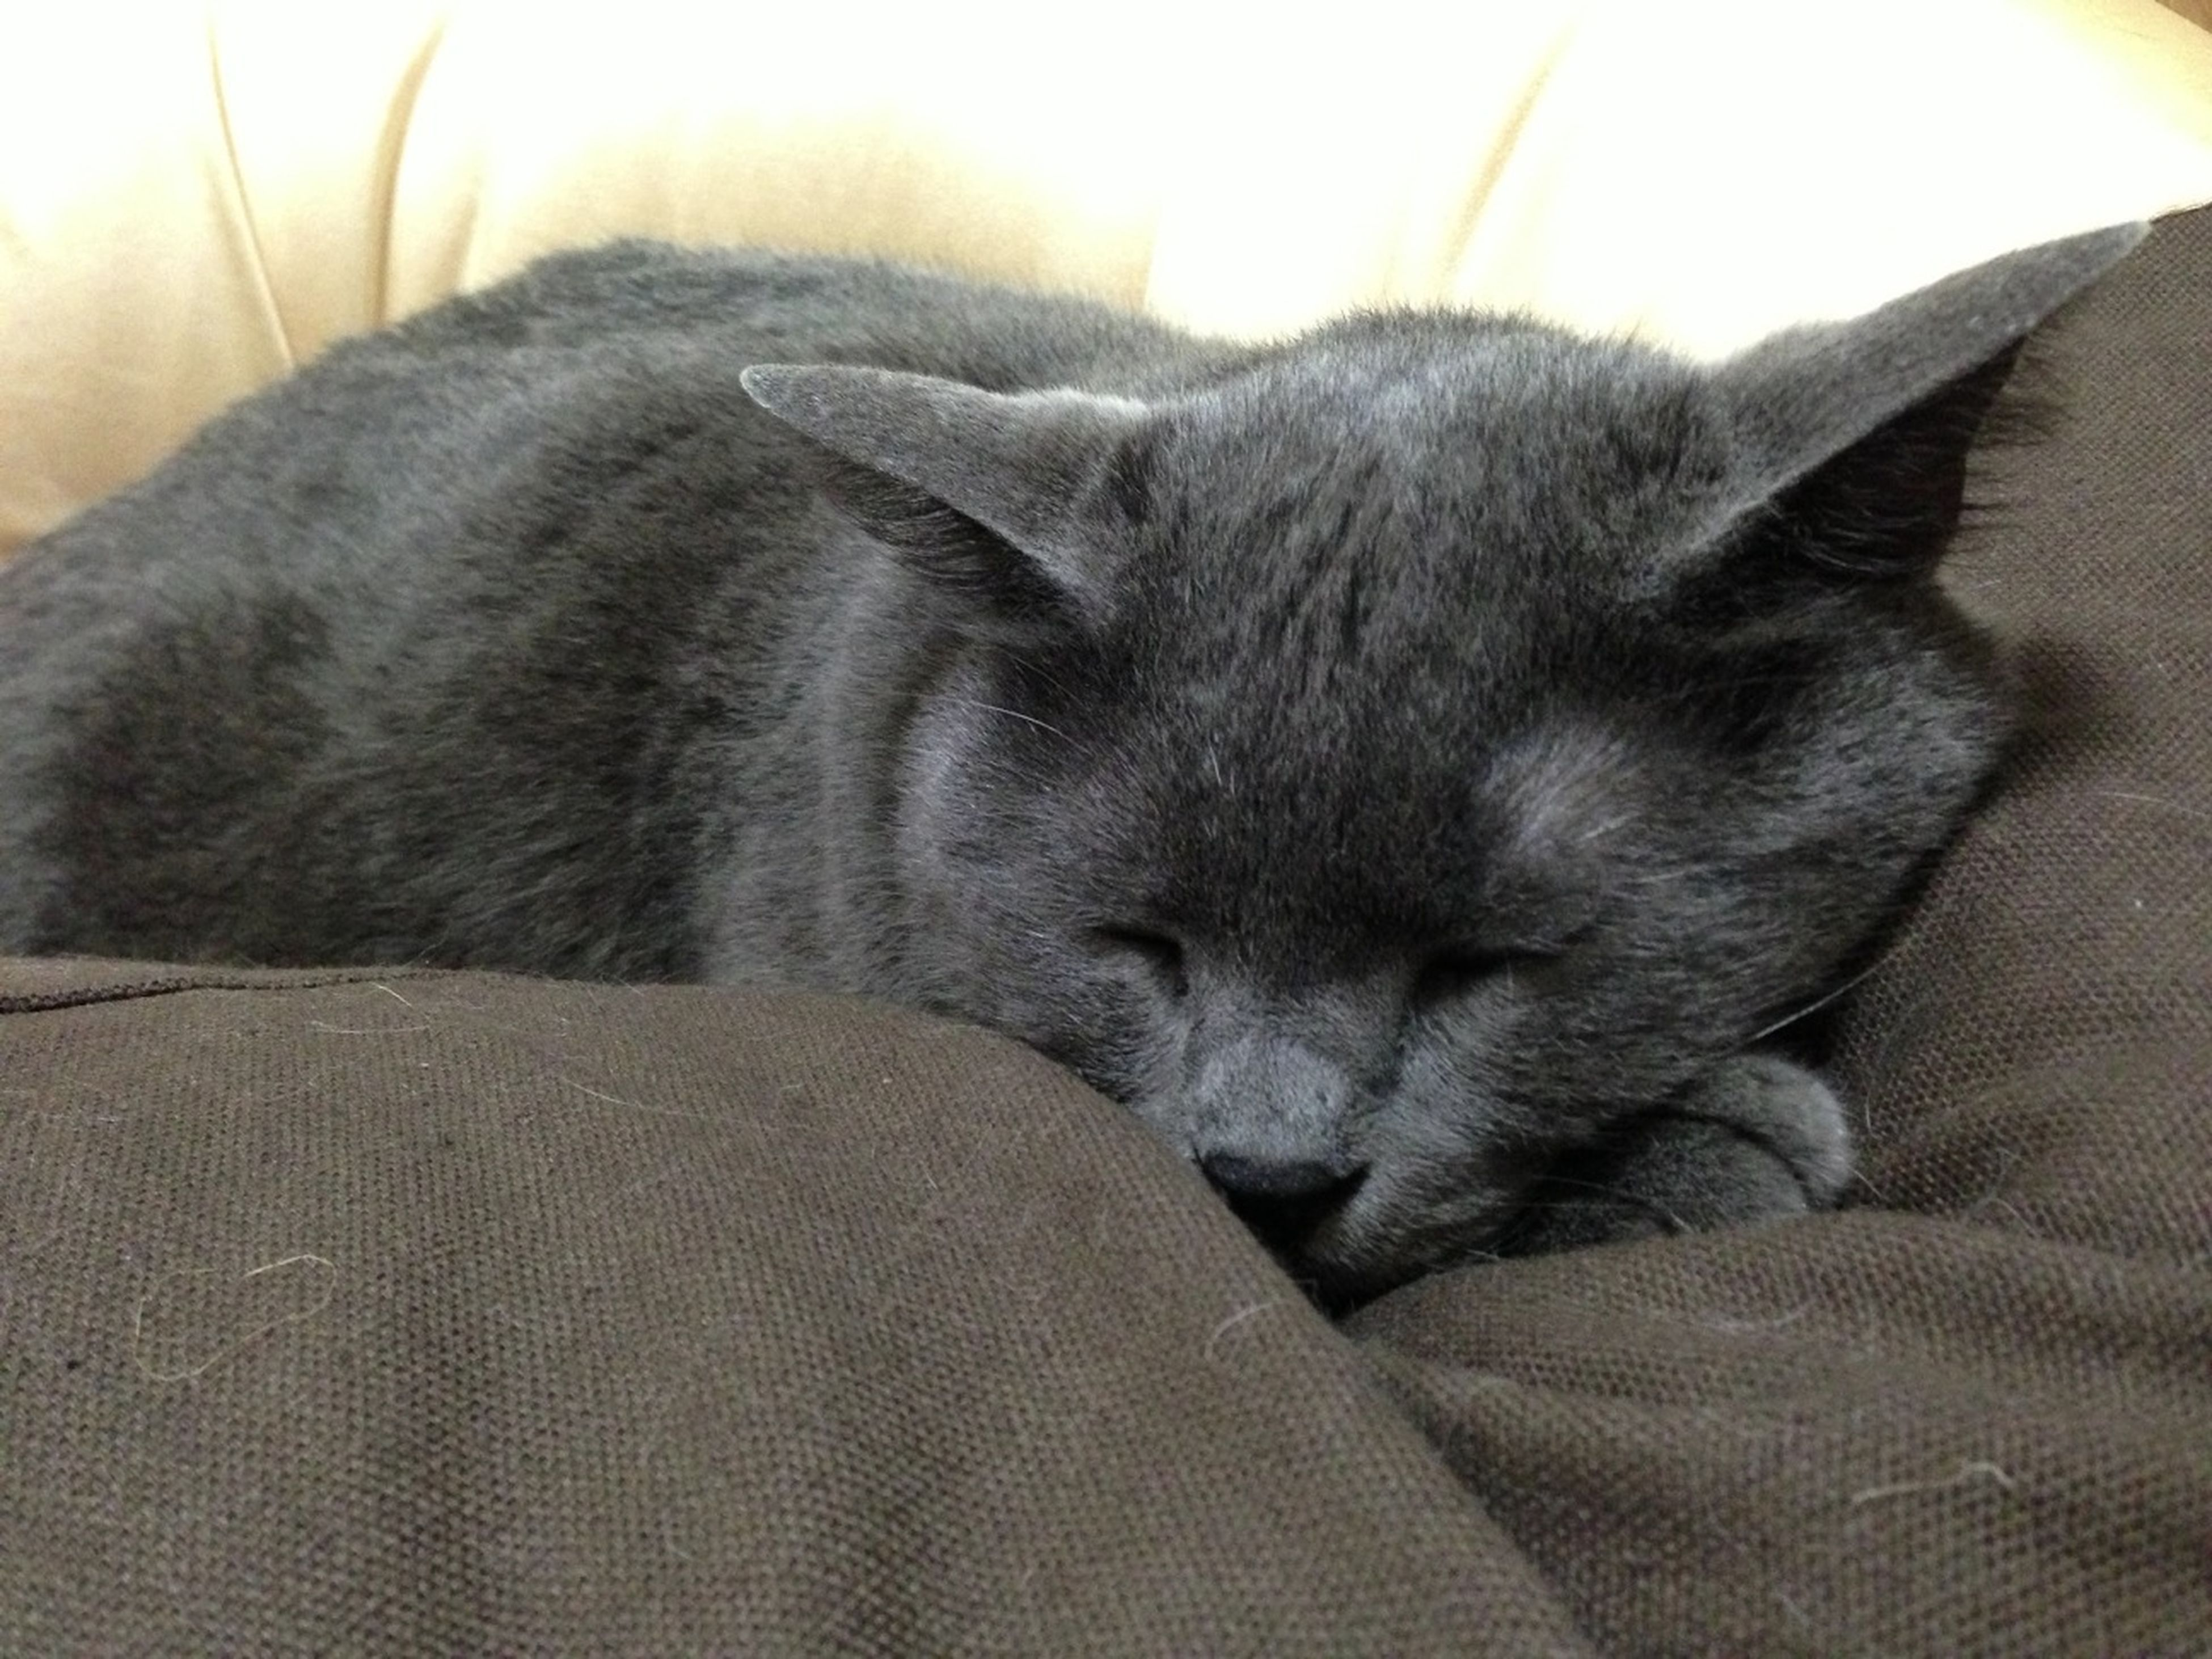 pets, domestic cat, domestic animals, mammal, cat, one animal, animal themes, feline, indoors, relaxation, whisker, resting, lying down, close-up, sleeping, bed, home interior, animal head, eyes closed, no people